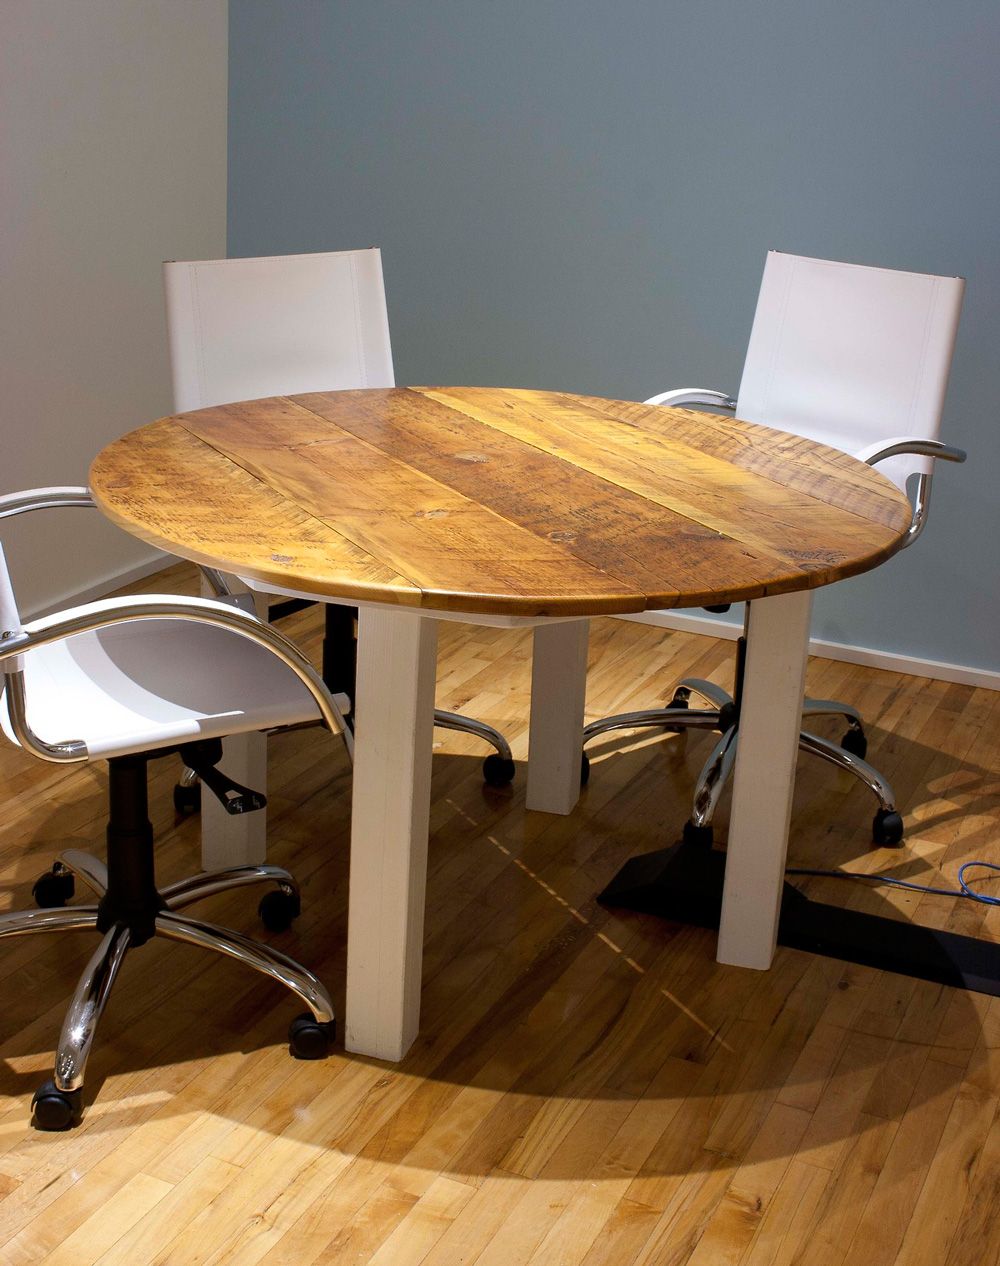 Round conference room table made of reclaimed wood